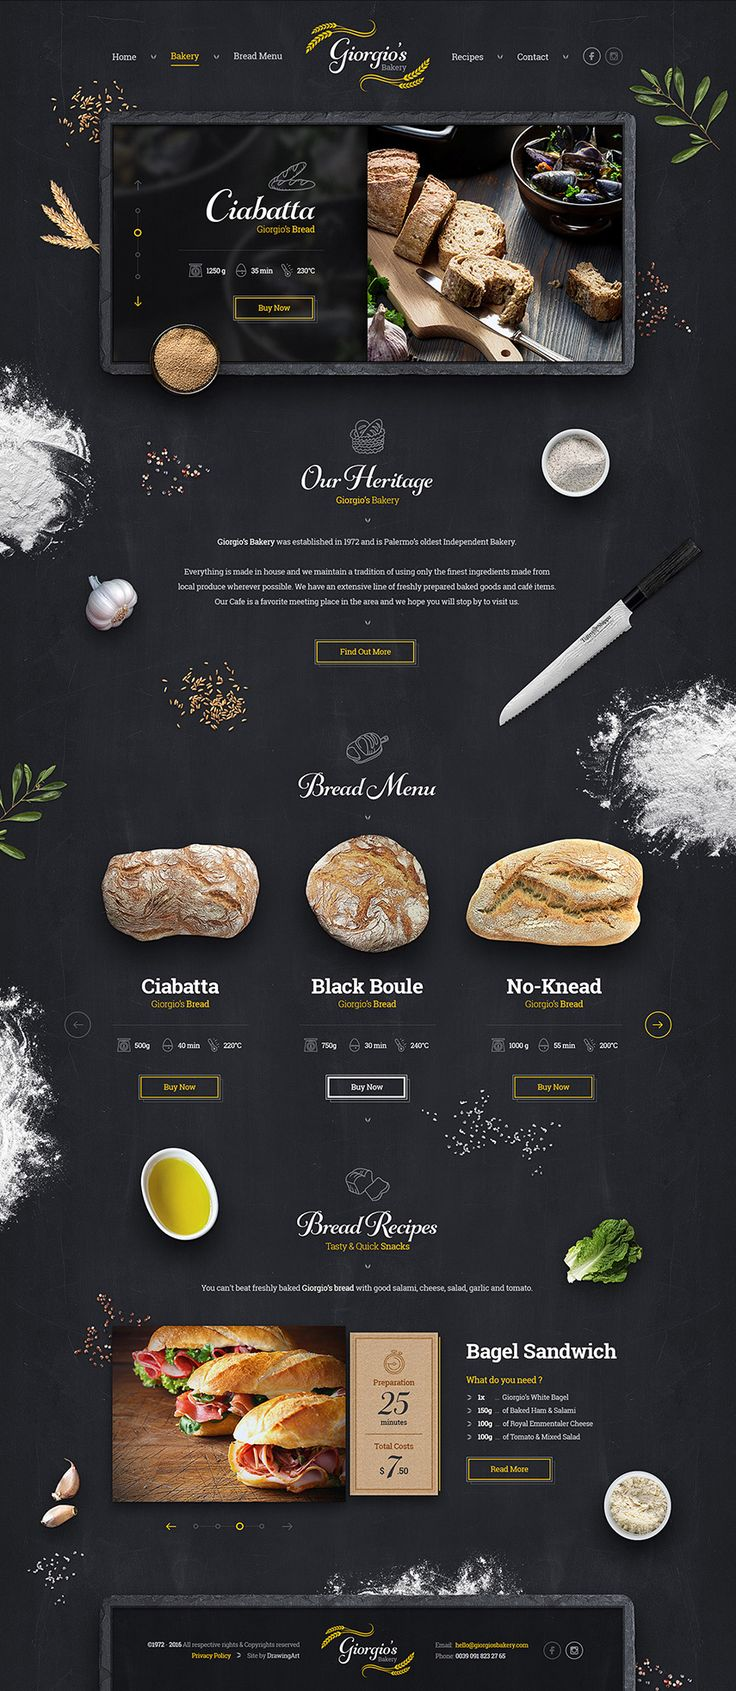 Great Website Design Ideas u003cinput typehidden prepossessing web design from home Find This Pin And More On Website Ideas